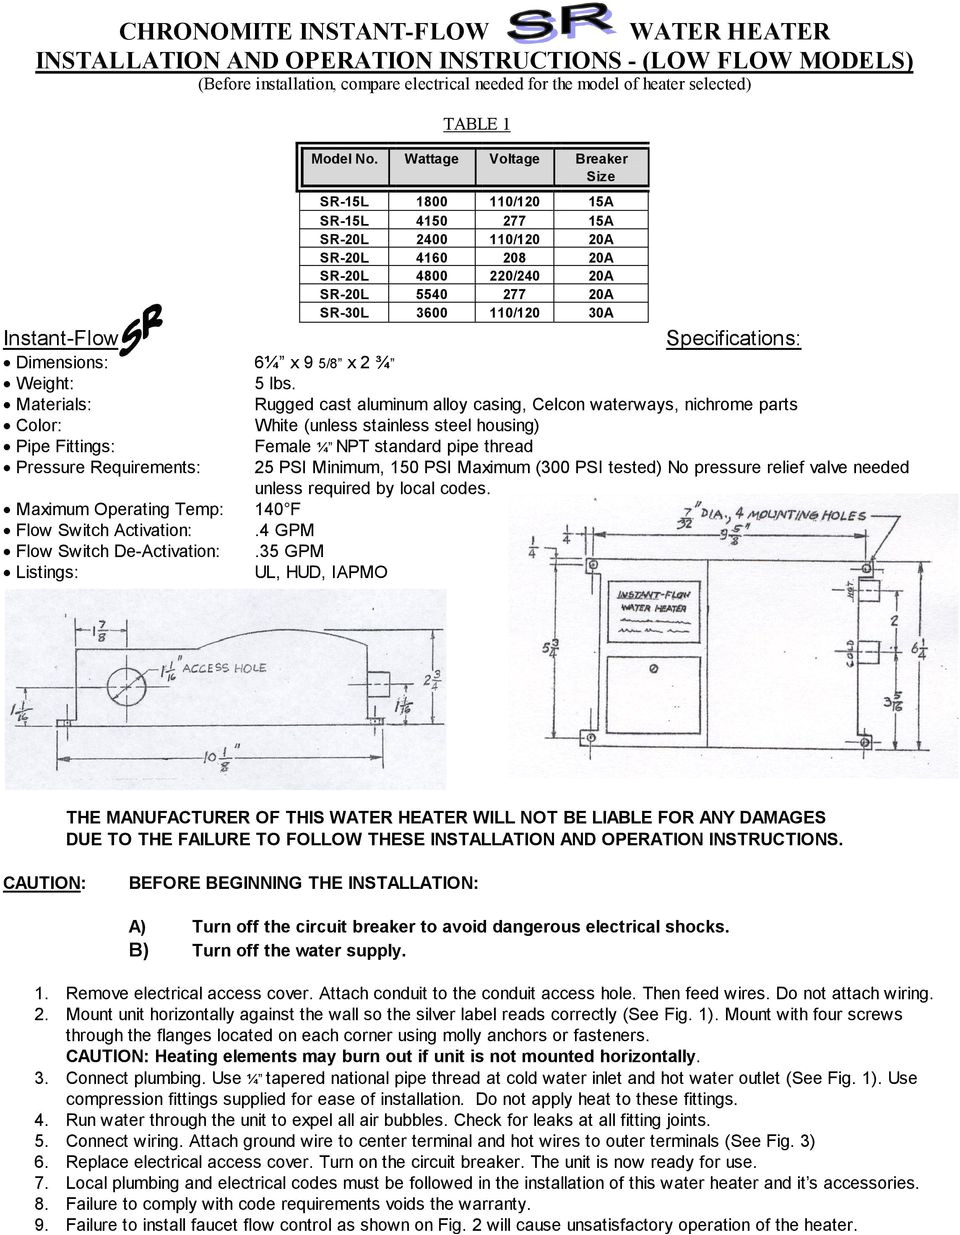 specifications dimensions 6a x 9 5 8 x 2 a weight 5